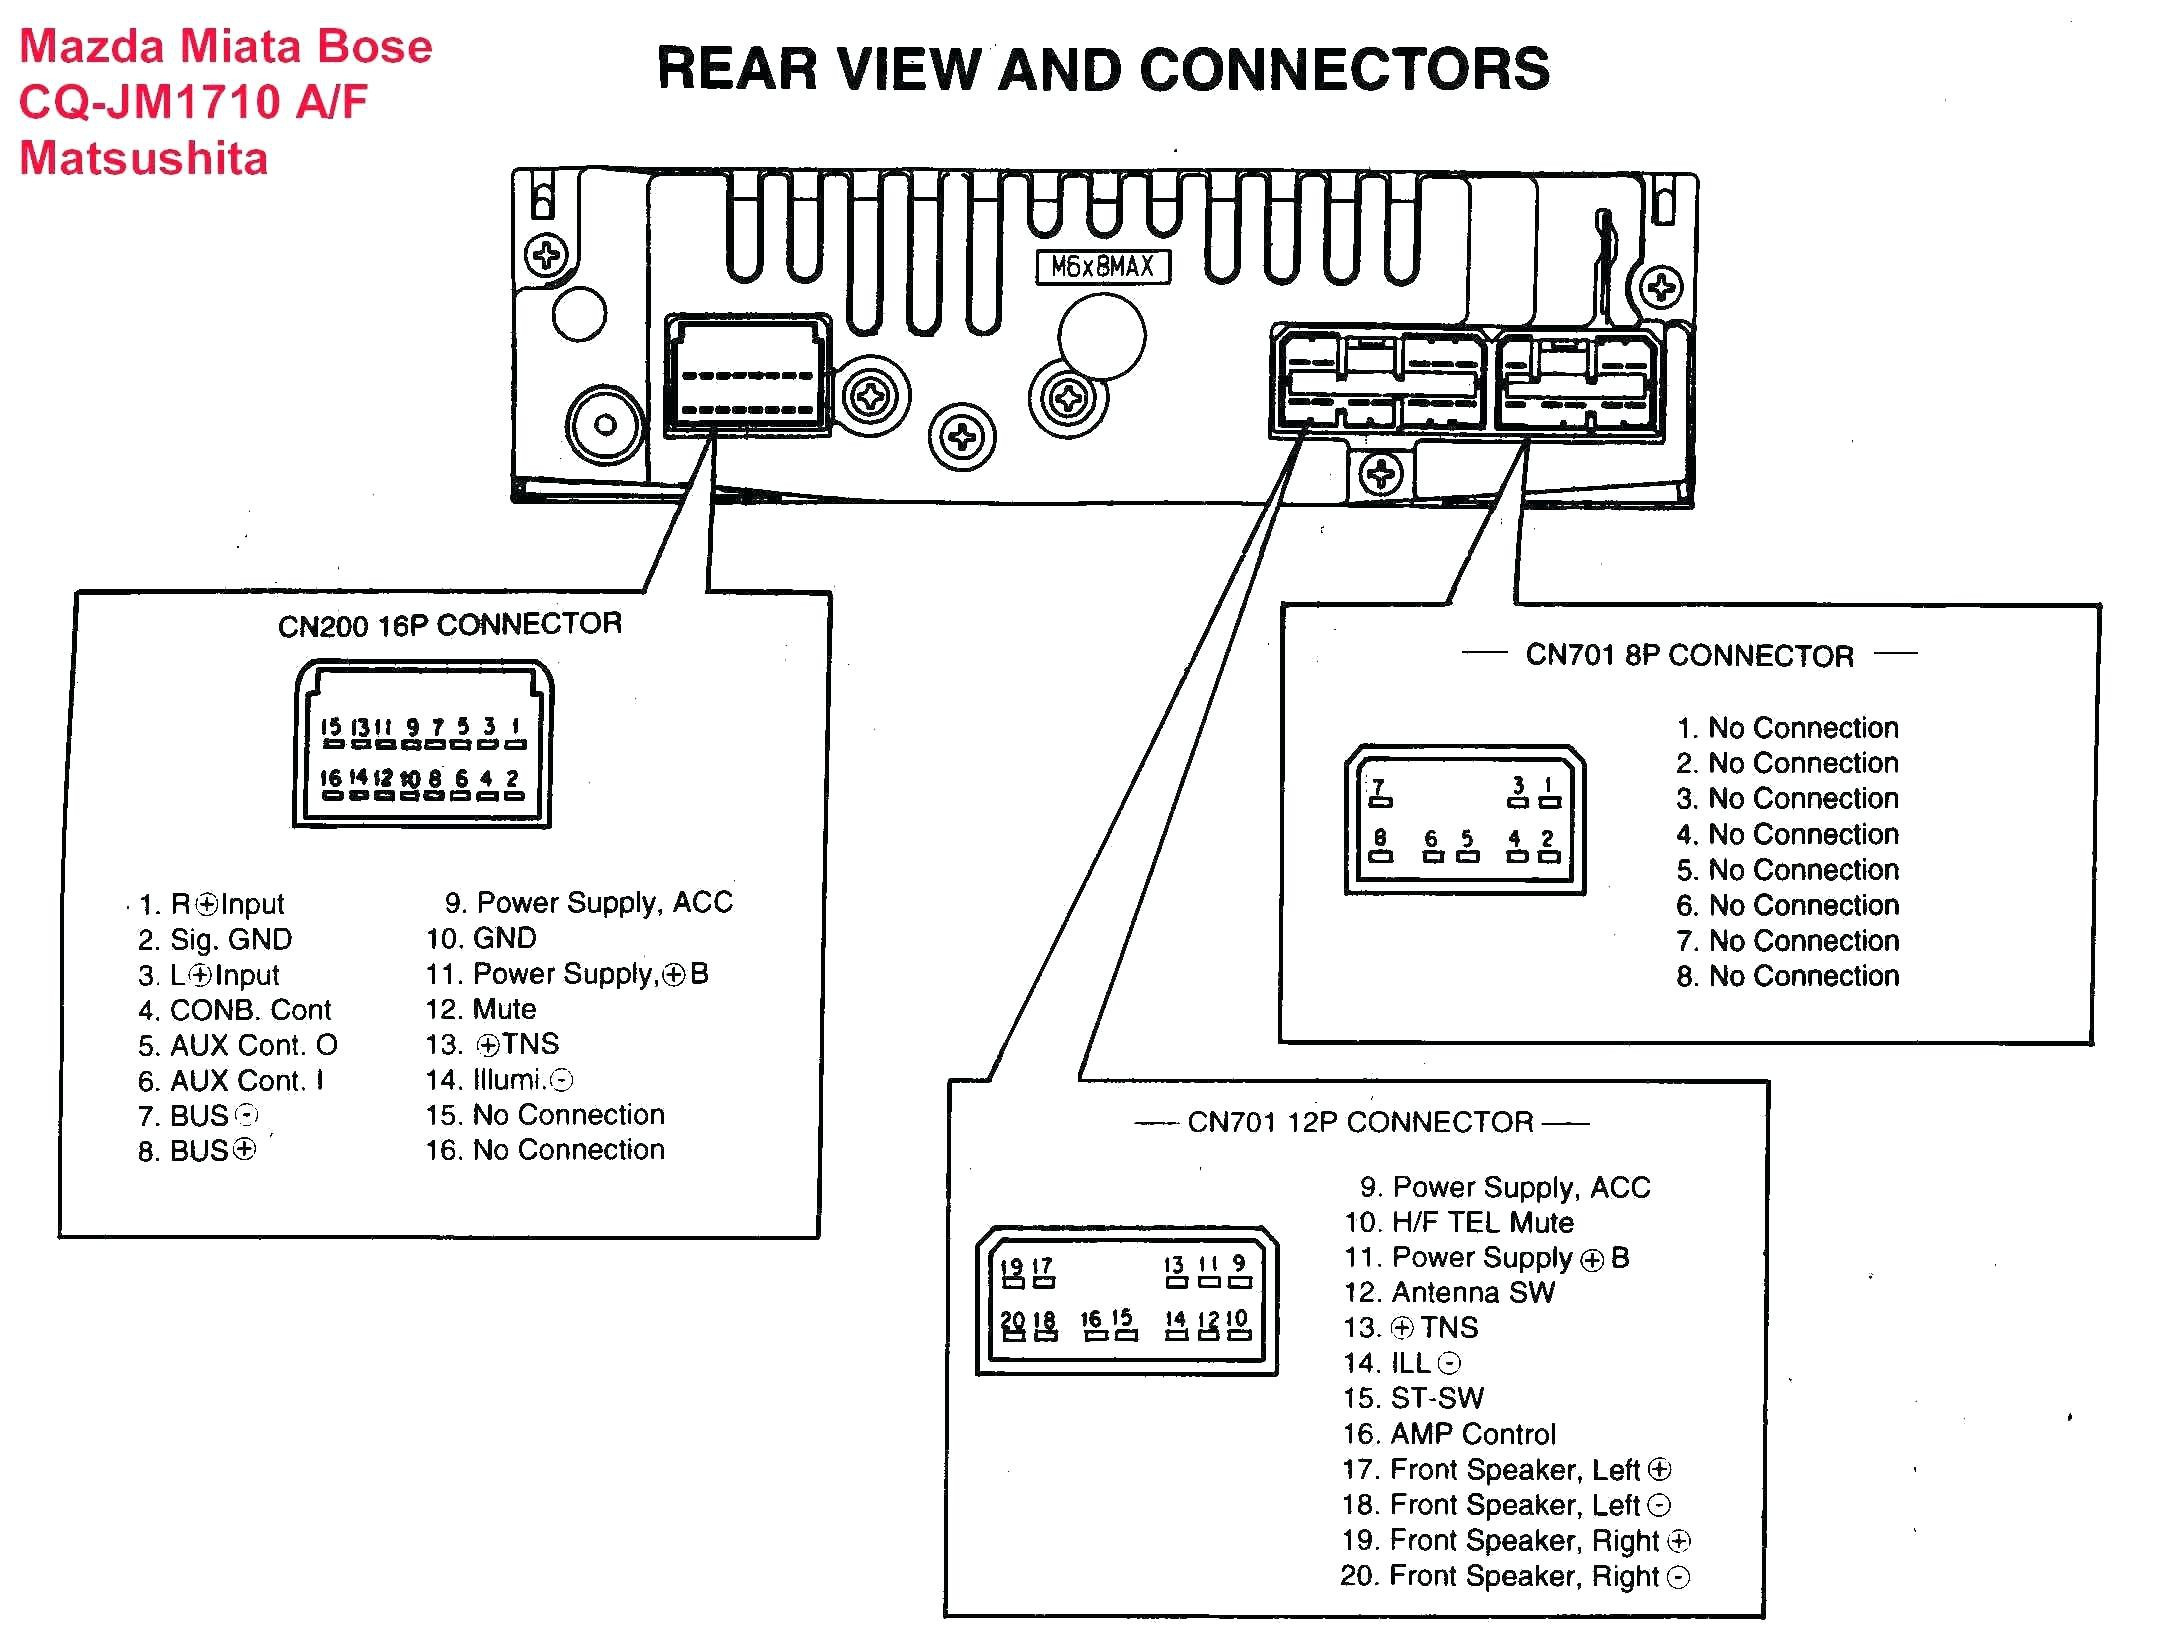 Sony Xplod Stereo Wiring Diagram | Wiring Diagram - Sony Xplod Car Stereo Wiring Diagram